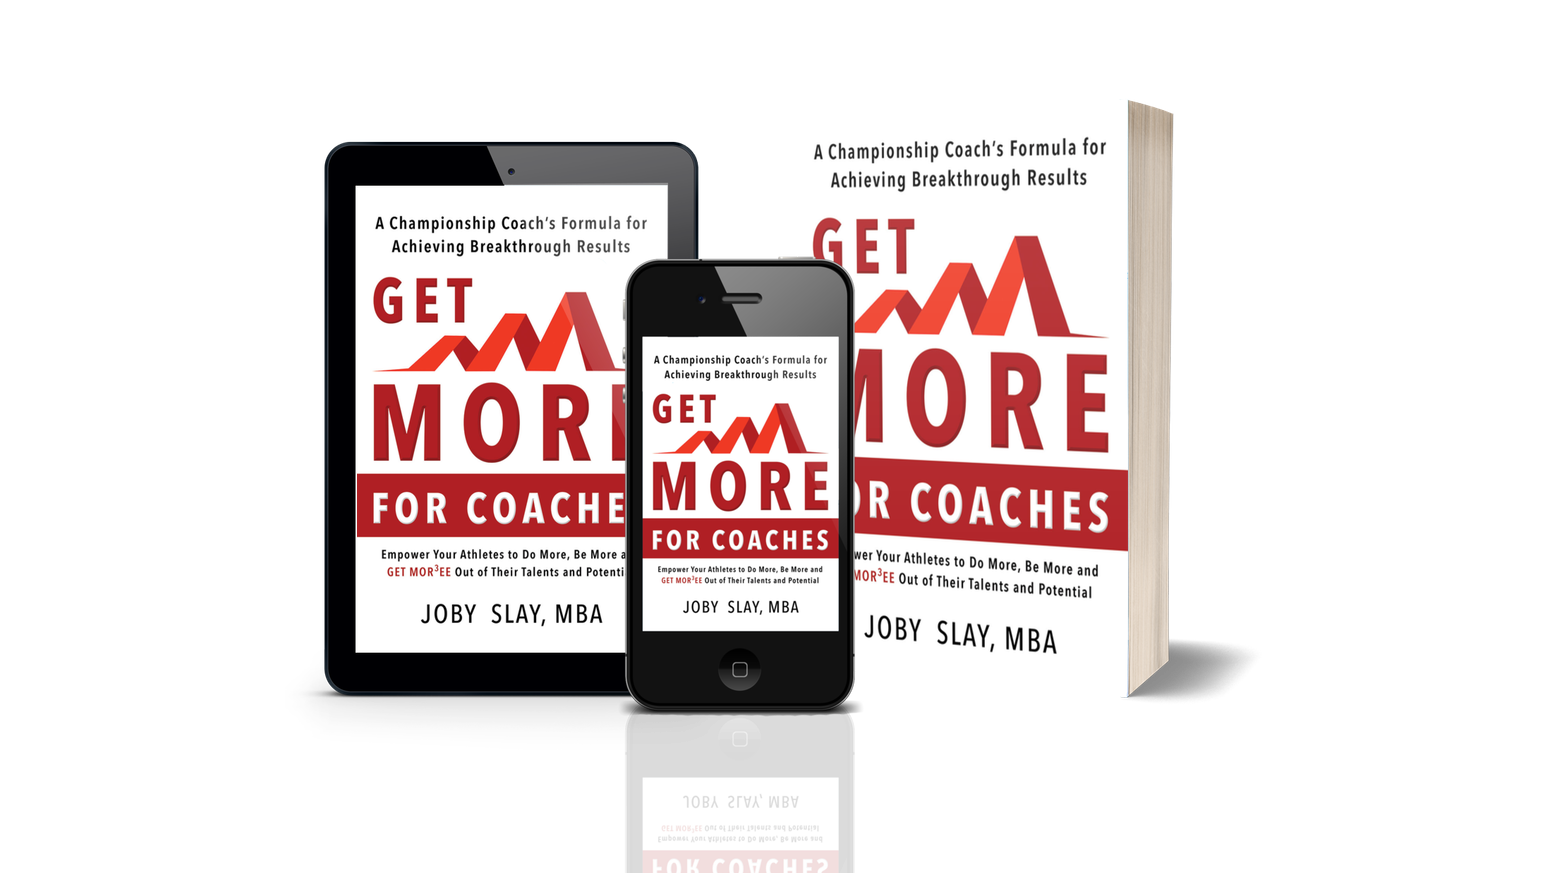 A Championship Coach's Formula for Empowering Your People to Do More, Be More and Get More Out of Their Talents and Potential.